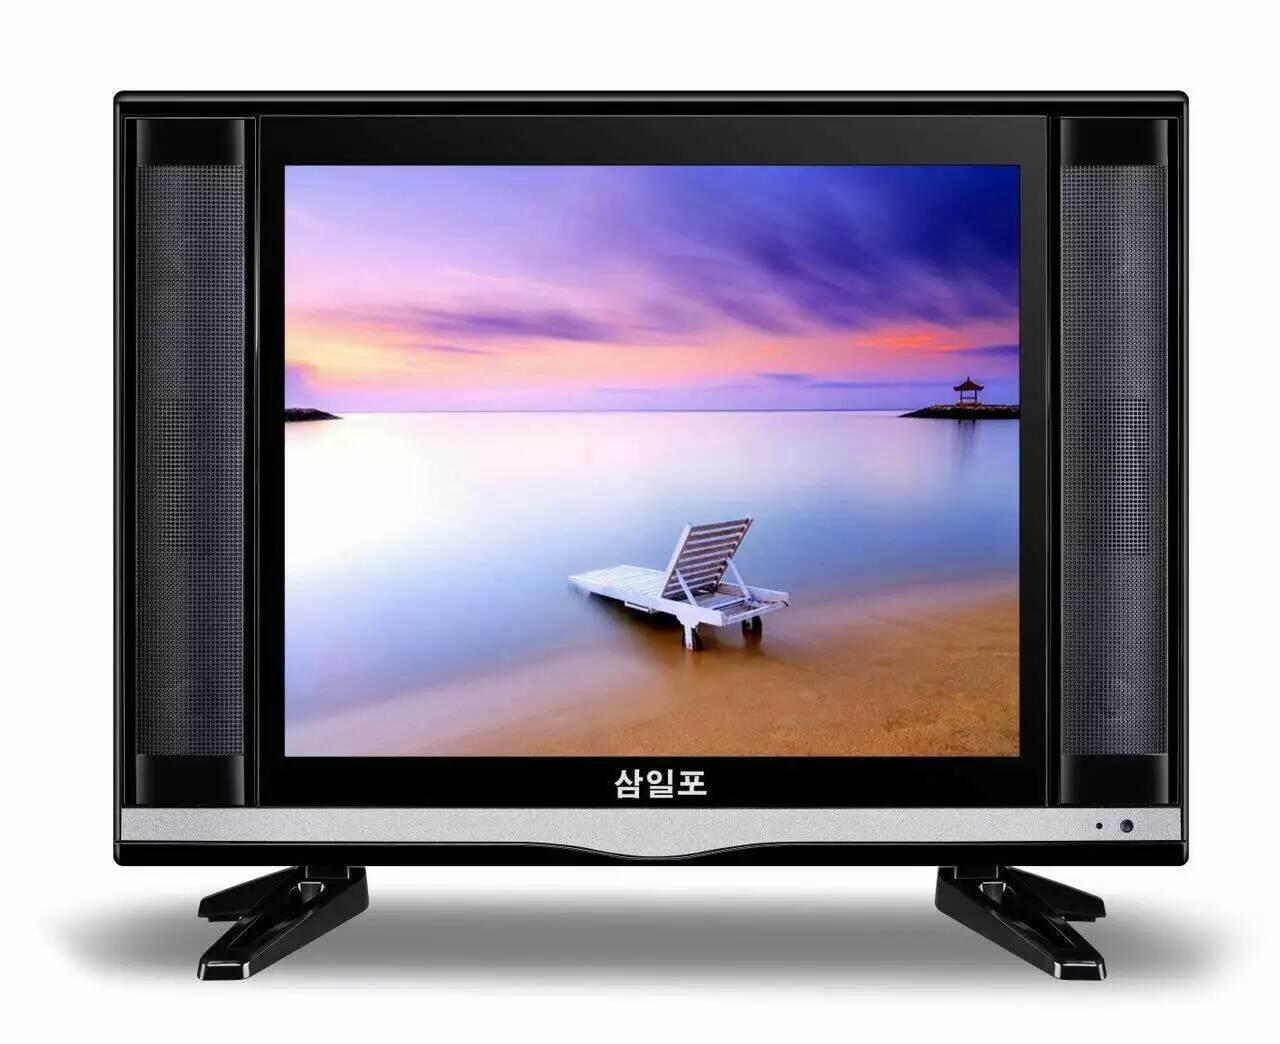 Xinyao LCD 17 inch flat screen tv fashion design for lcd screen-1